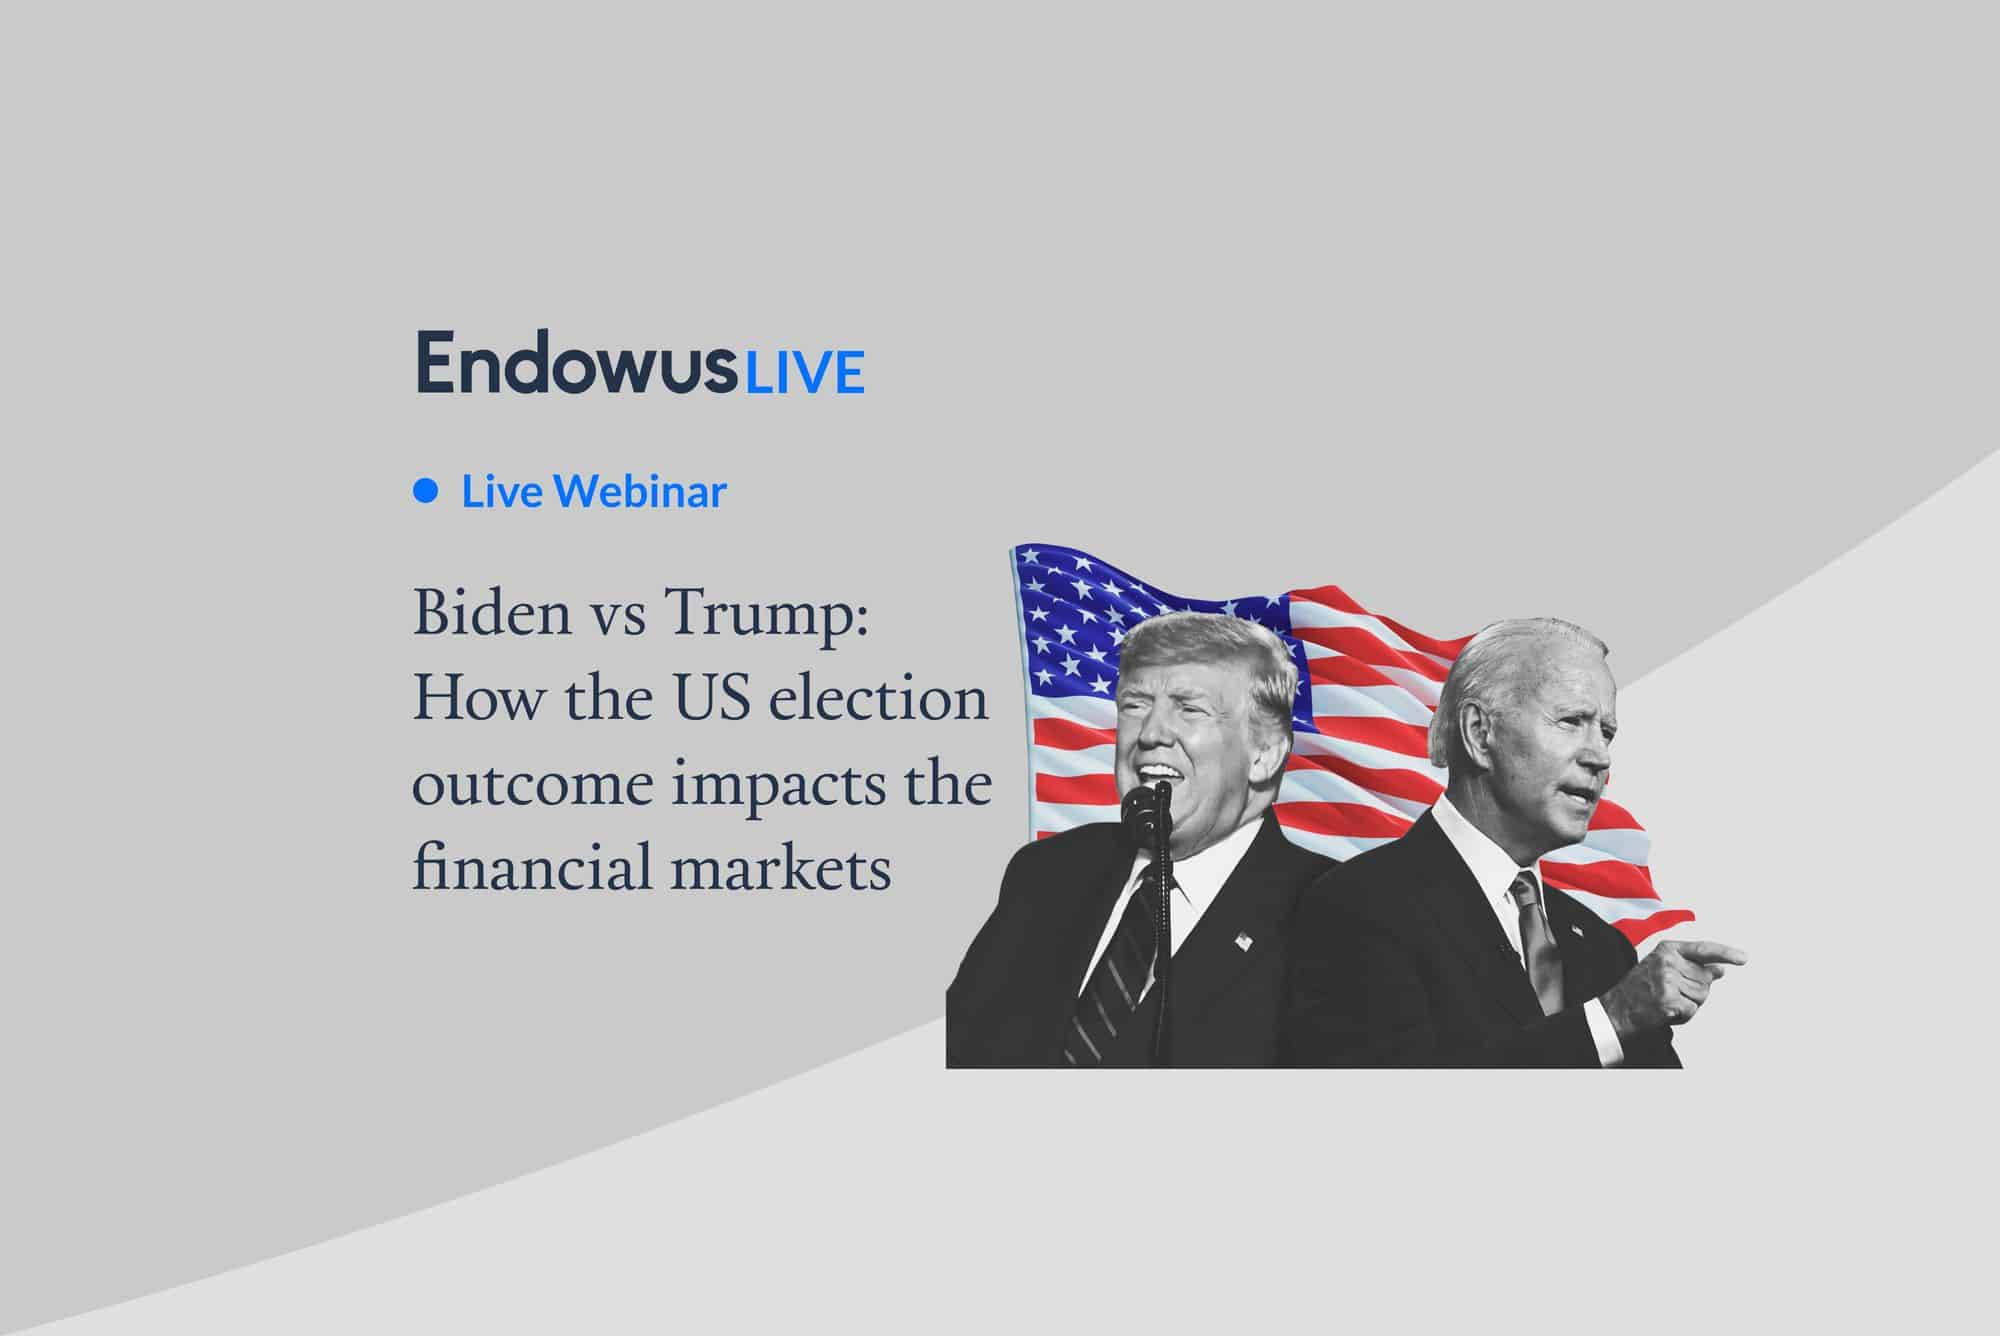 Biden vs Trump: How US election impacts the financial markets